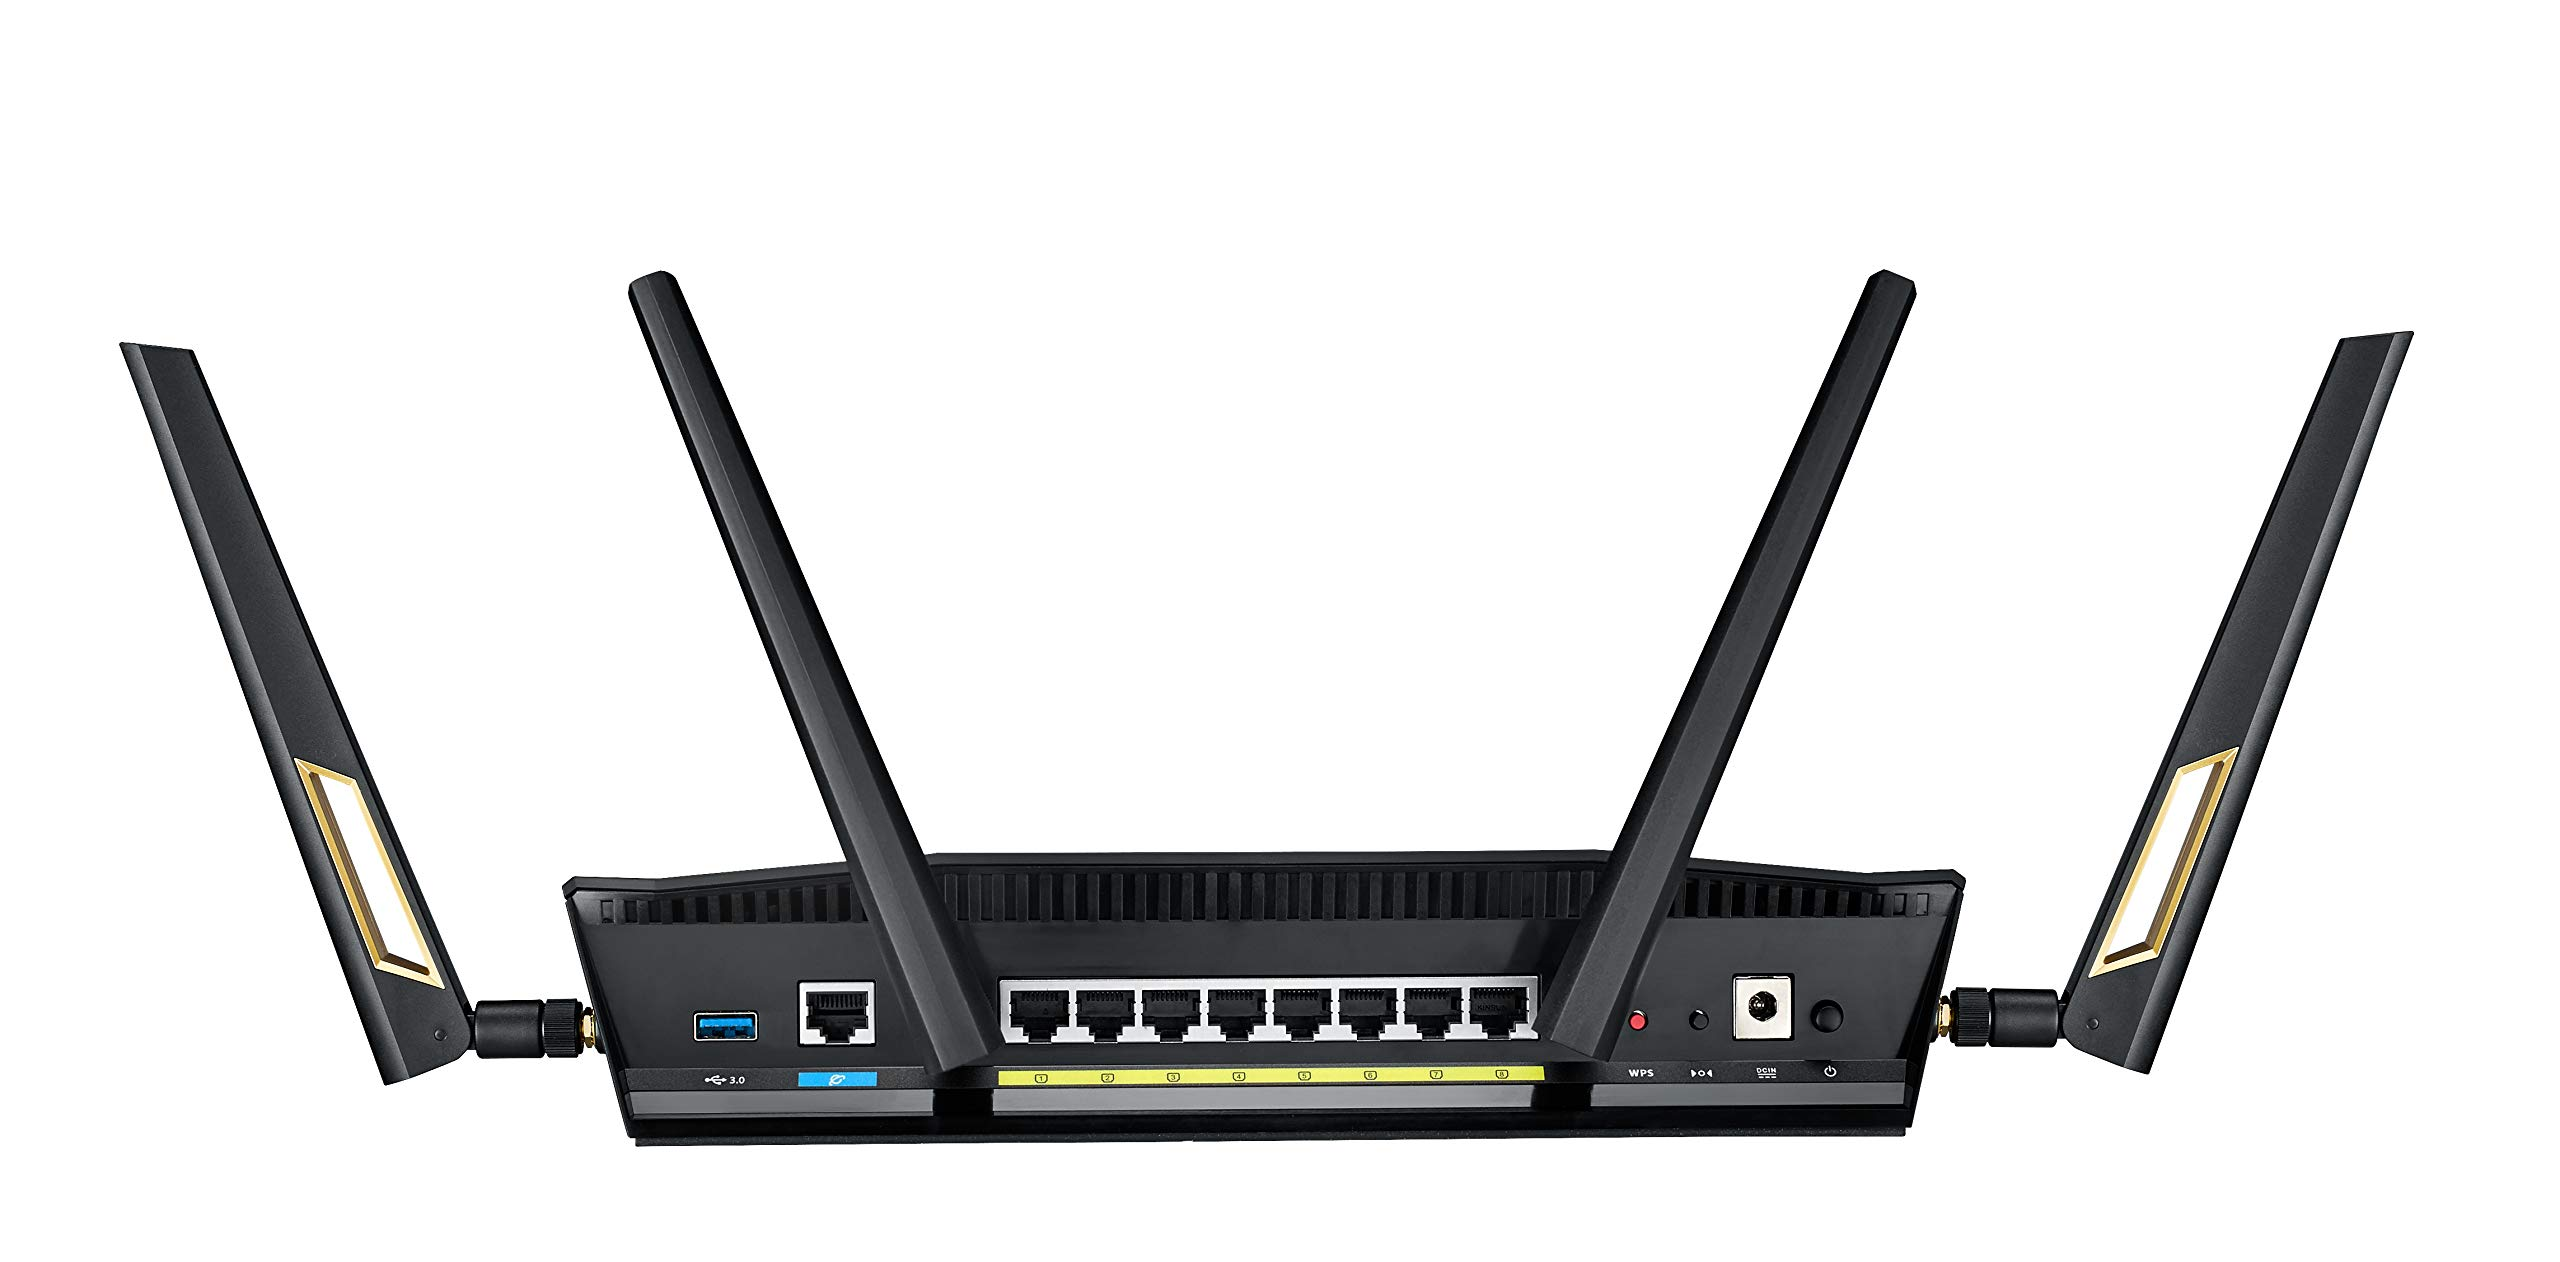 ASUS RT-AX88U AX6000 Dual-Band WiFi Router, Aiprotection Lifetime Security by Trend Micro, Aimesh Compatible for Mesh WiFi System, Next-Gen WiFi 6, Wireless 802.11Ax, 8 X Gigabit LAN Ports 2 Next-gen Wi-Fi standard - 802.11Ax Wi-Fi standard for better efficiency and throughput. Ultrafast Wi-Fi speed - 6000 Mbps Wi-Fi speed to handle even the busiest network with ease. Wider usage and more convenience - 4 antennas + 8 LAN ports to support more clients at the same time.